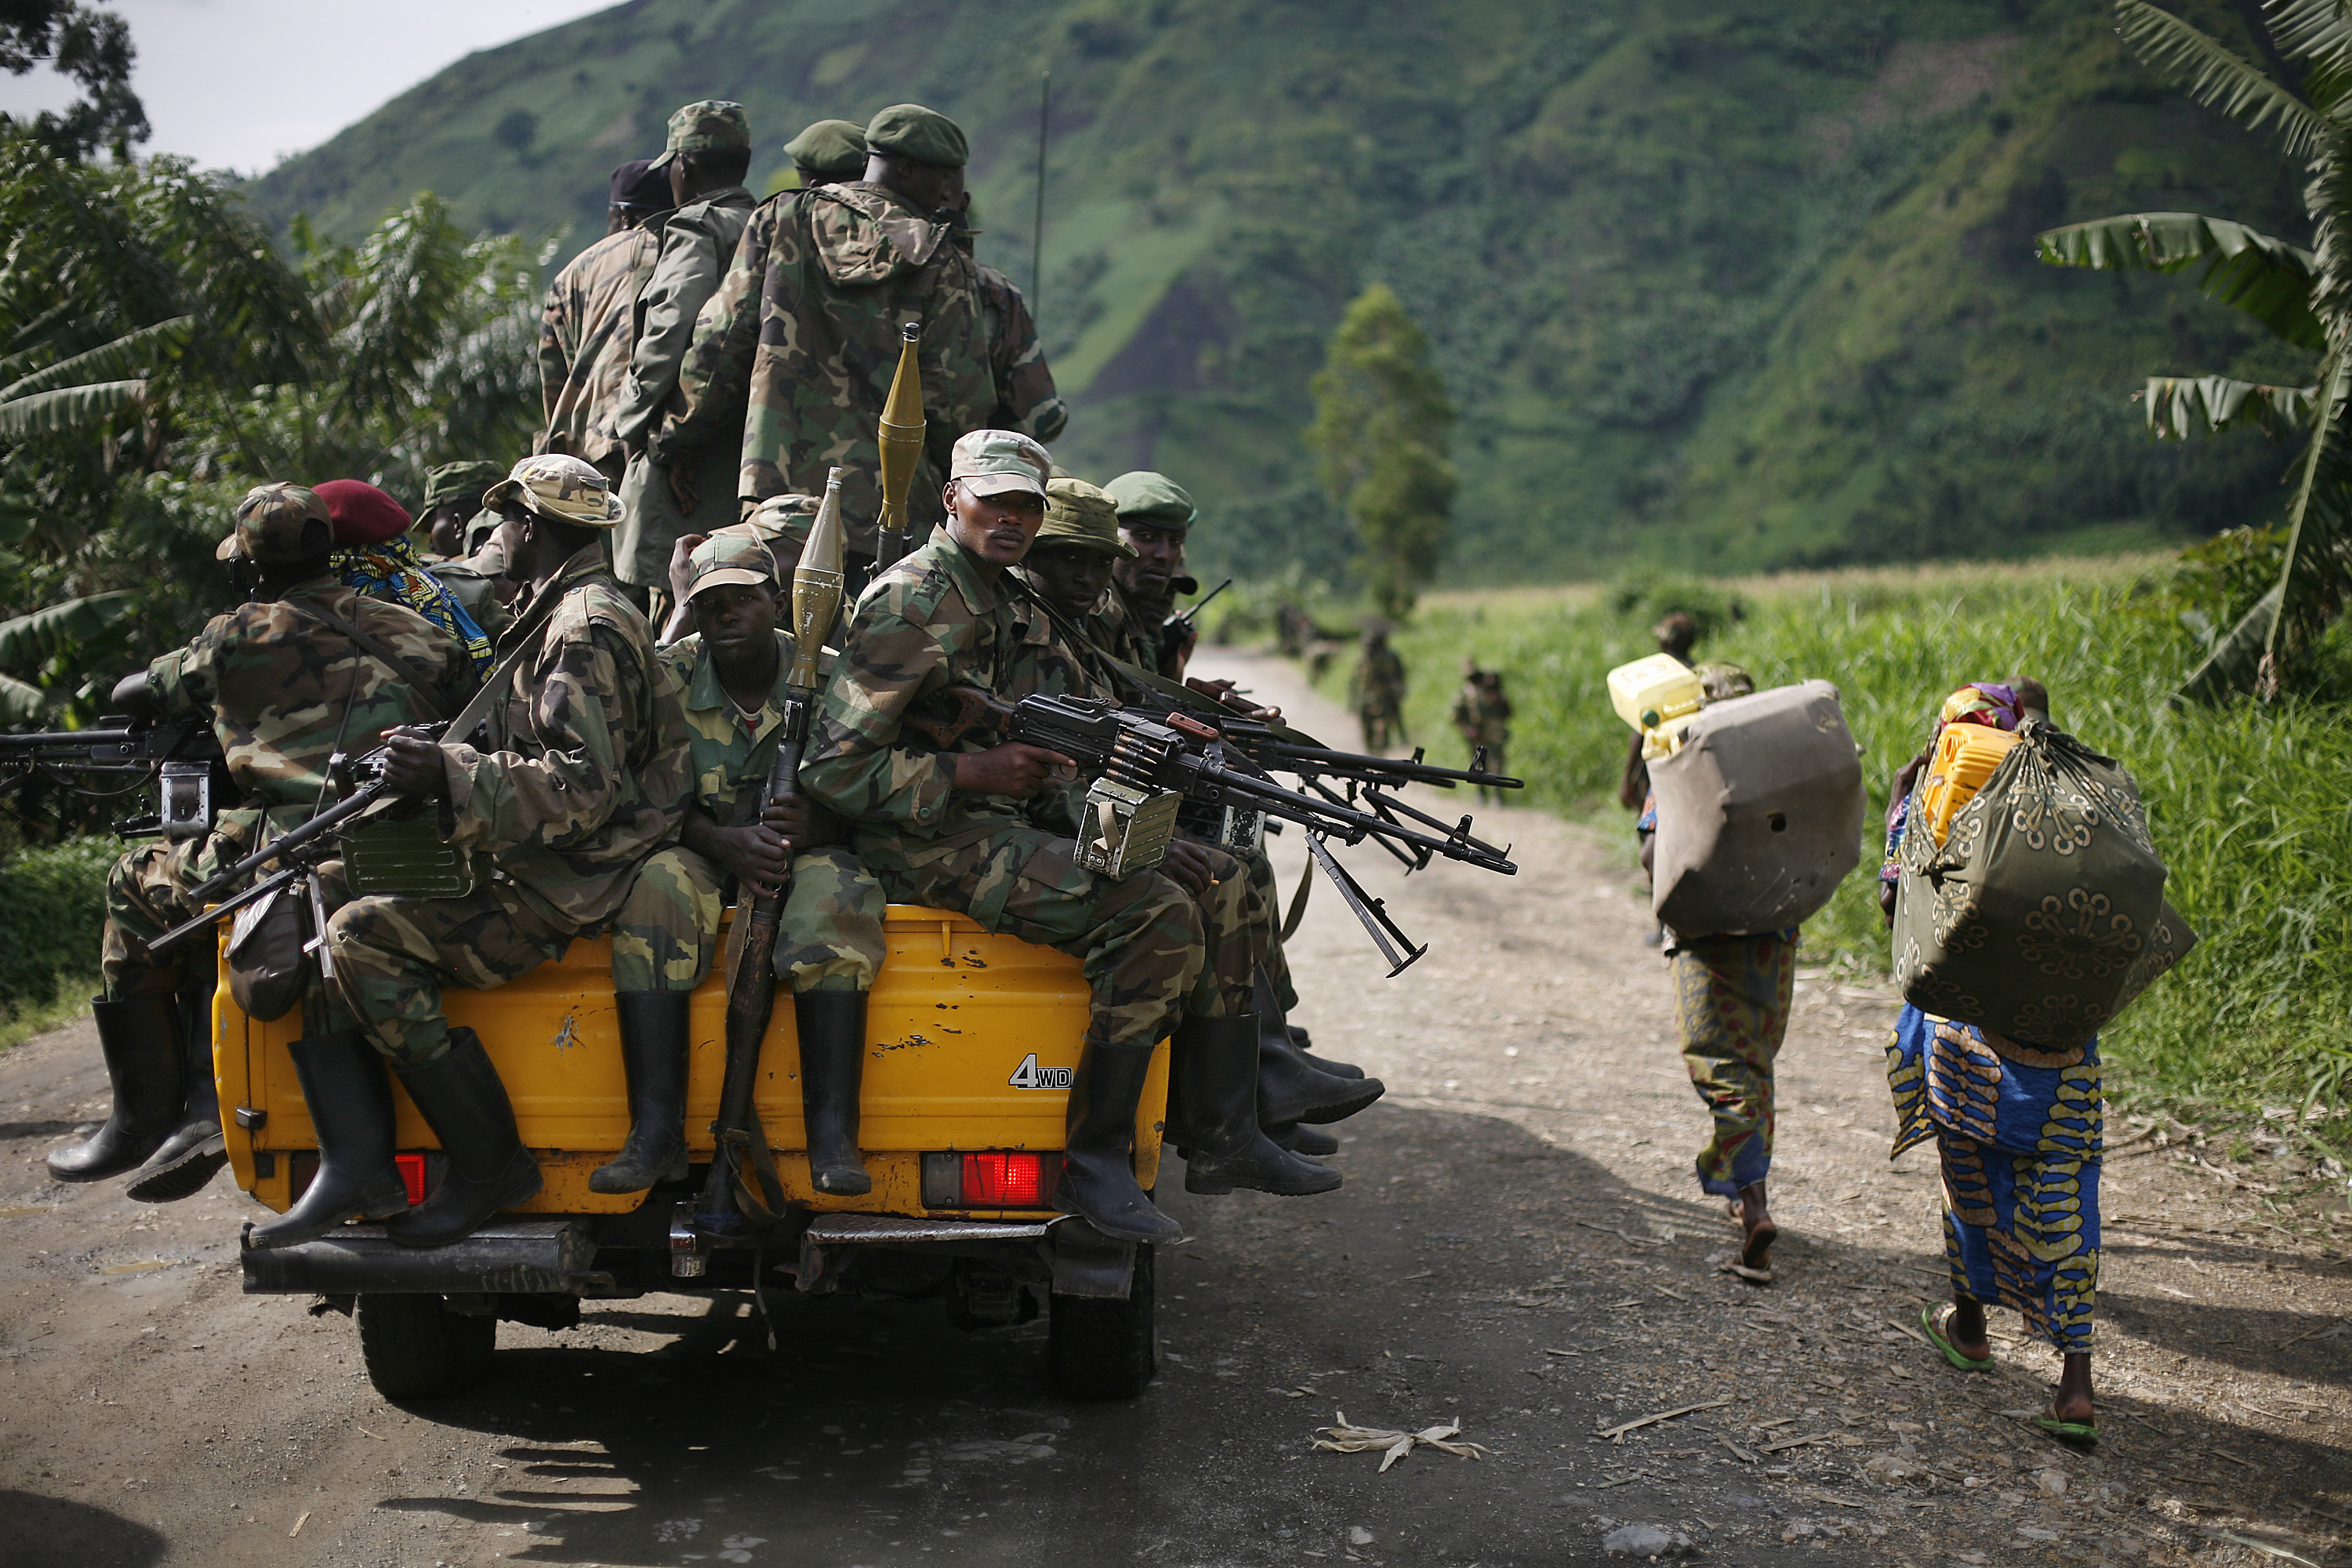 Op-ed: To prevent an M23 resurgence in Congo, perpetrators must face justice